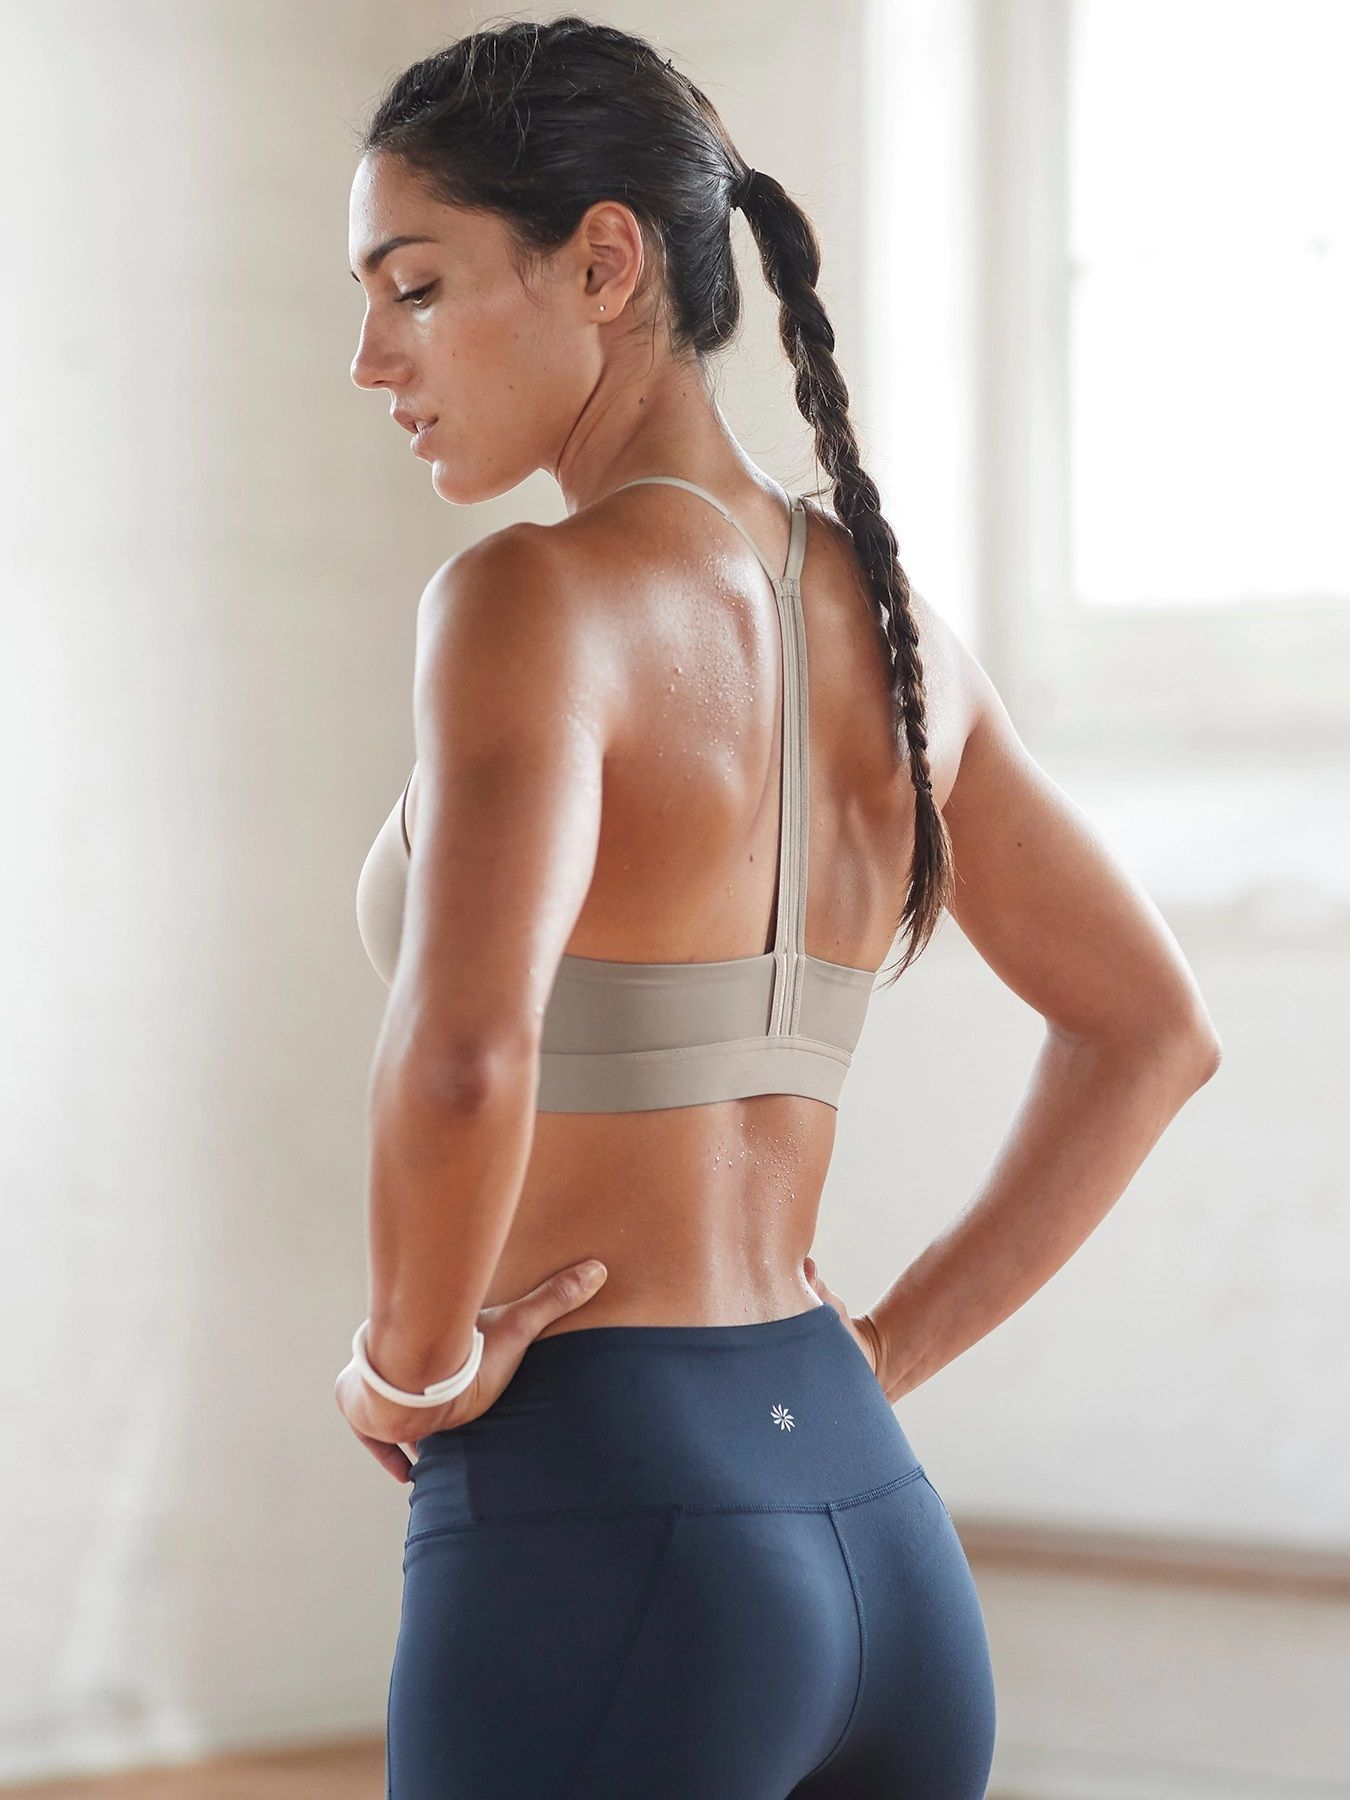 Allison Stokke Hot